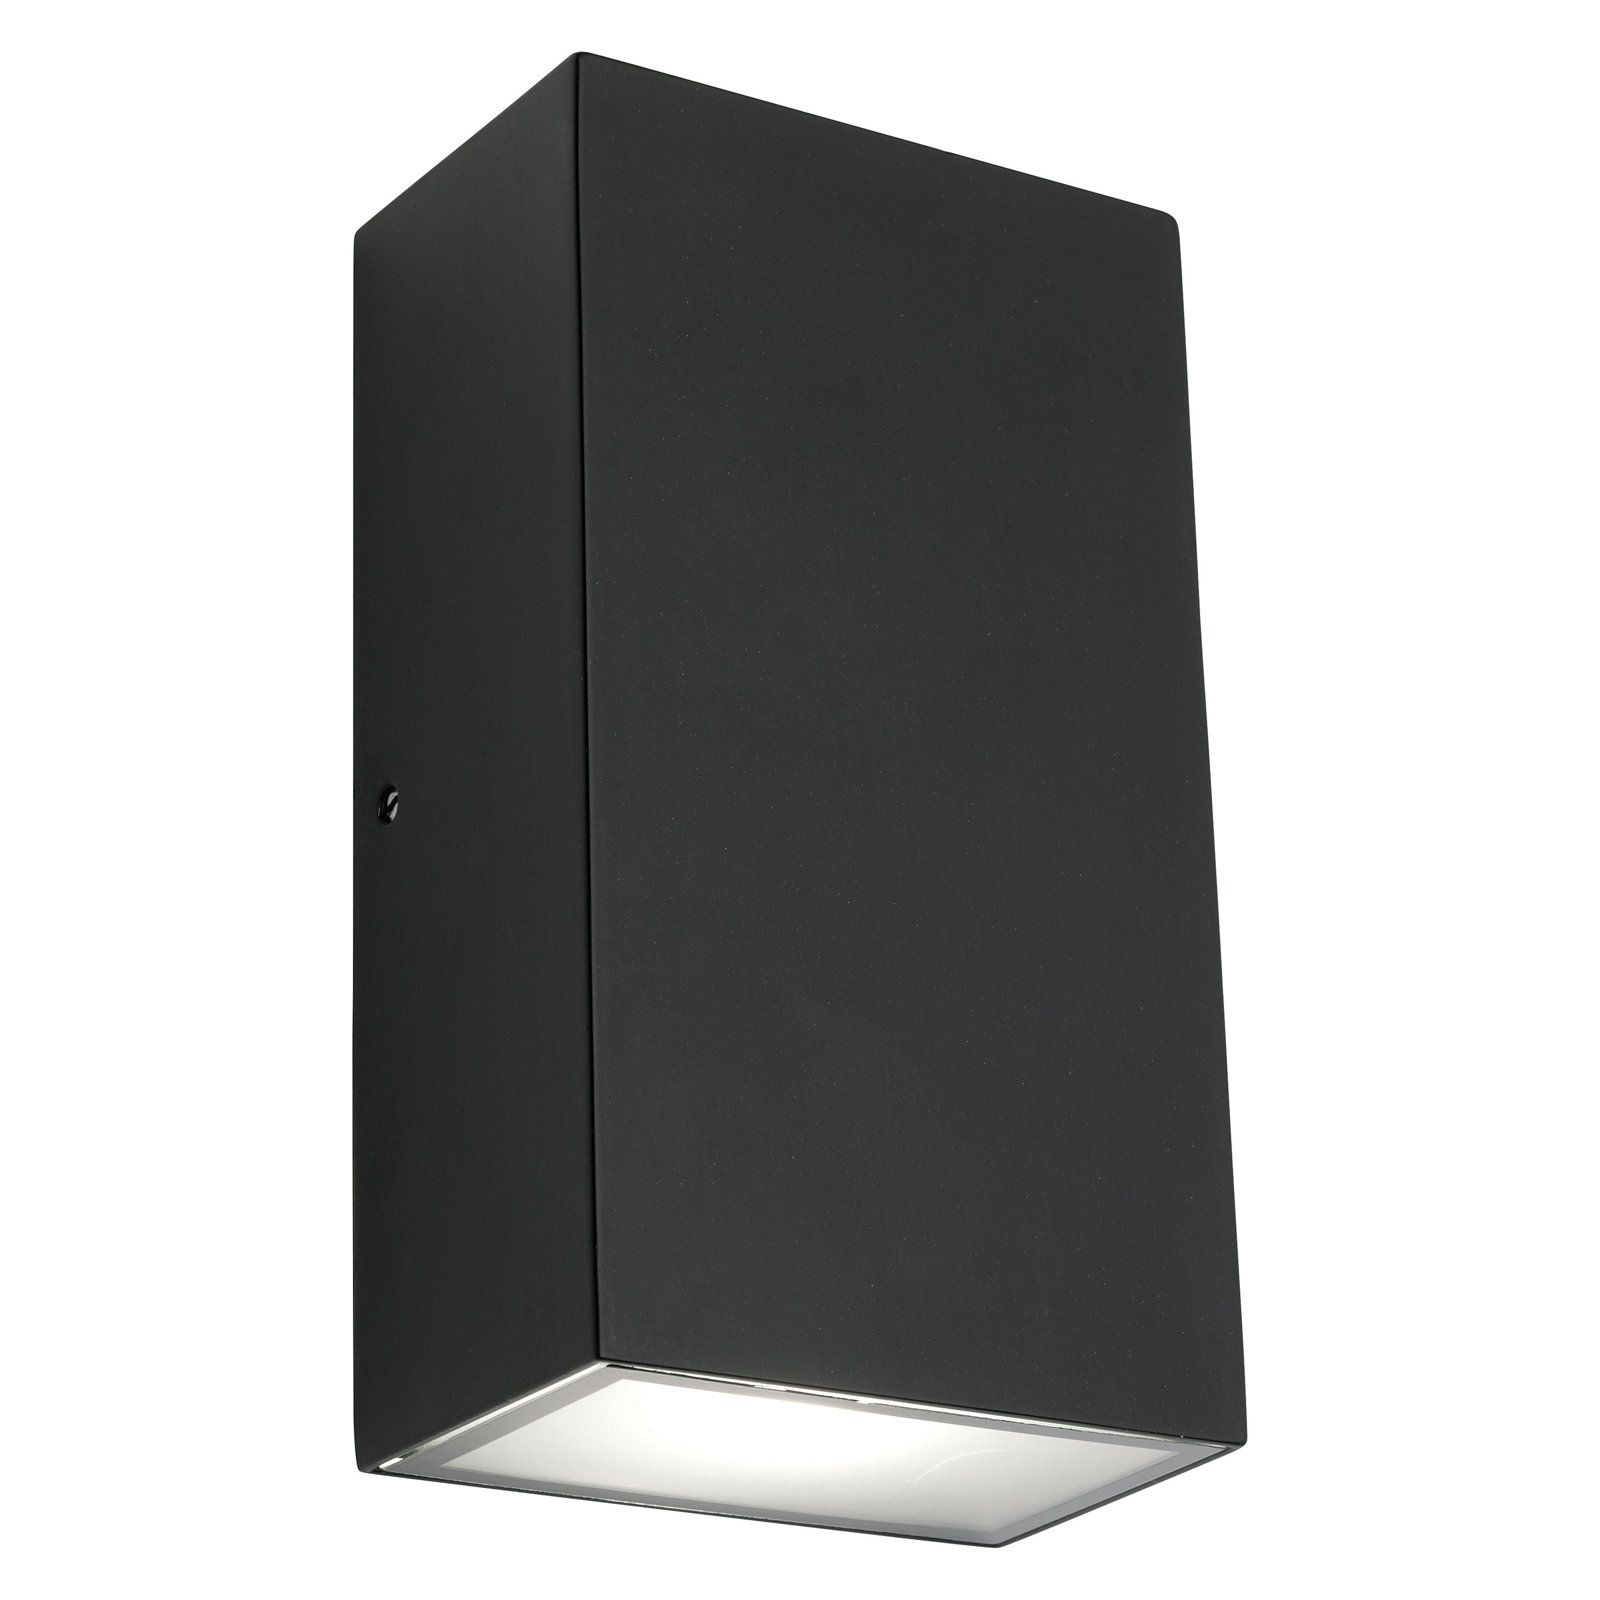 Mercator Brenton LED Square Black UpDown Exterior Wall Light - Exterior down lighting